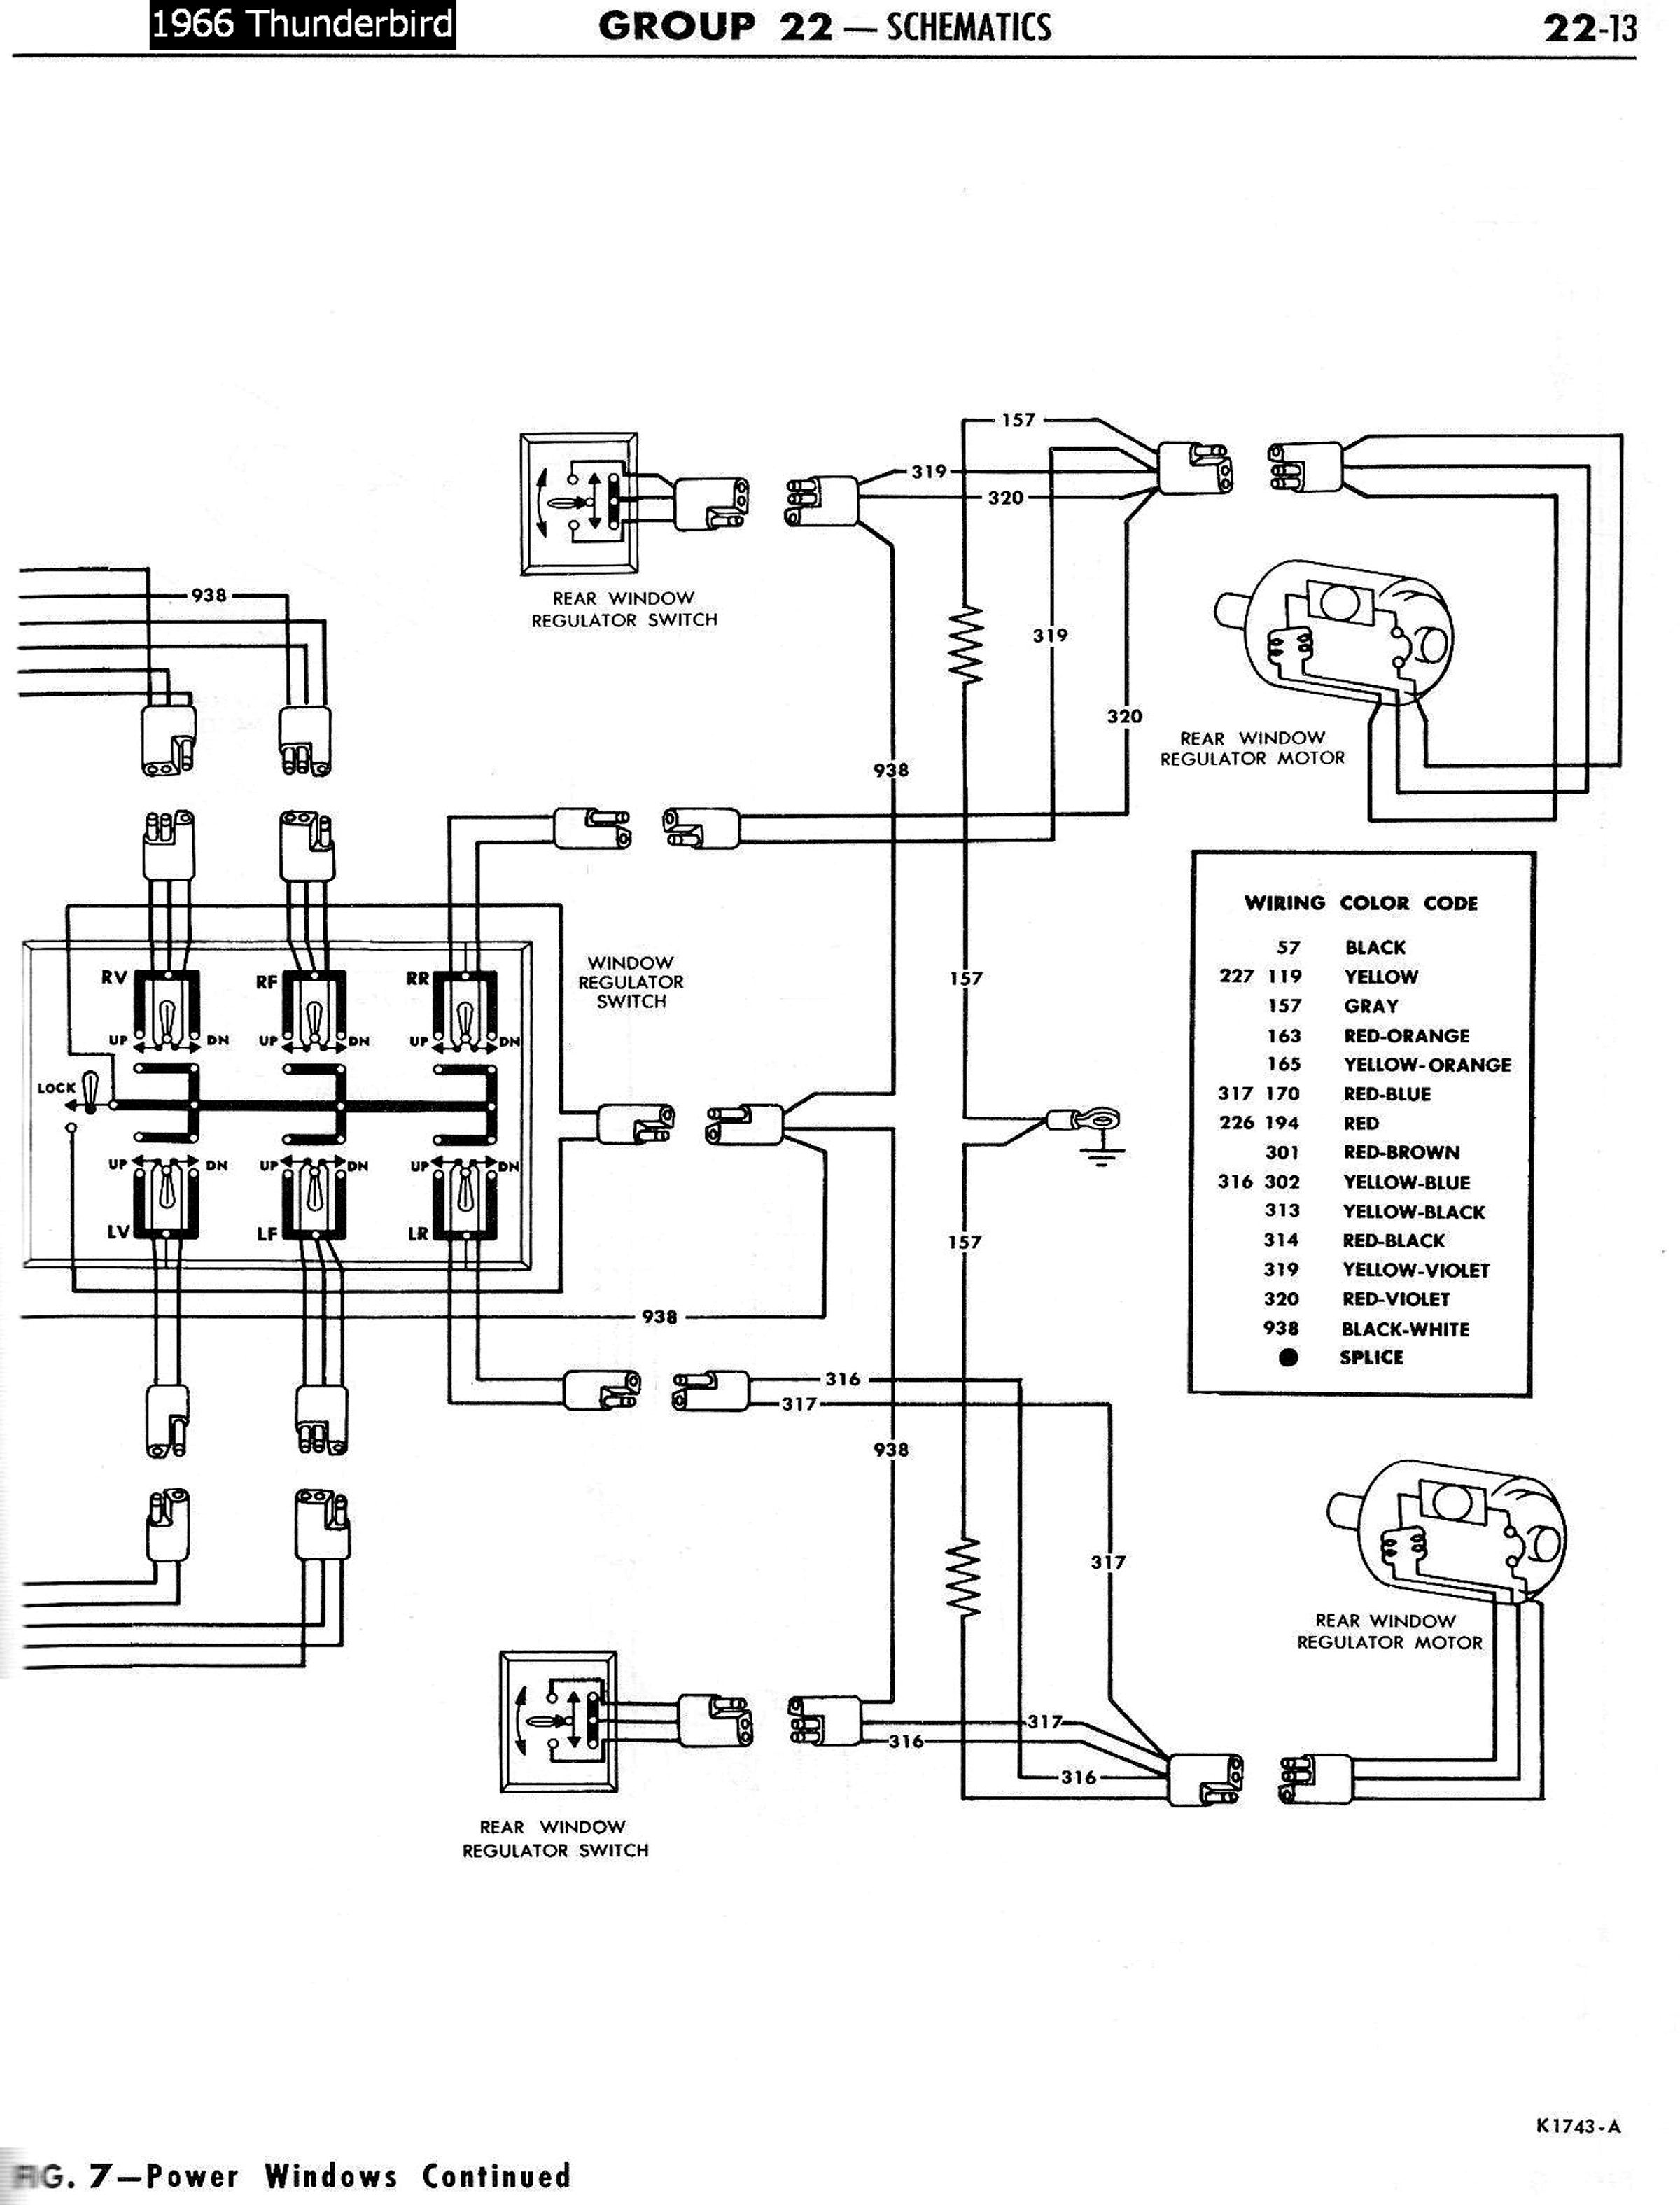 68 Thunderbird Wiring Diagram Modern Design Of In Addition House Circuits 1958 Ford Electrical Schematics Rh Squarebirds Org 70 66